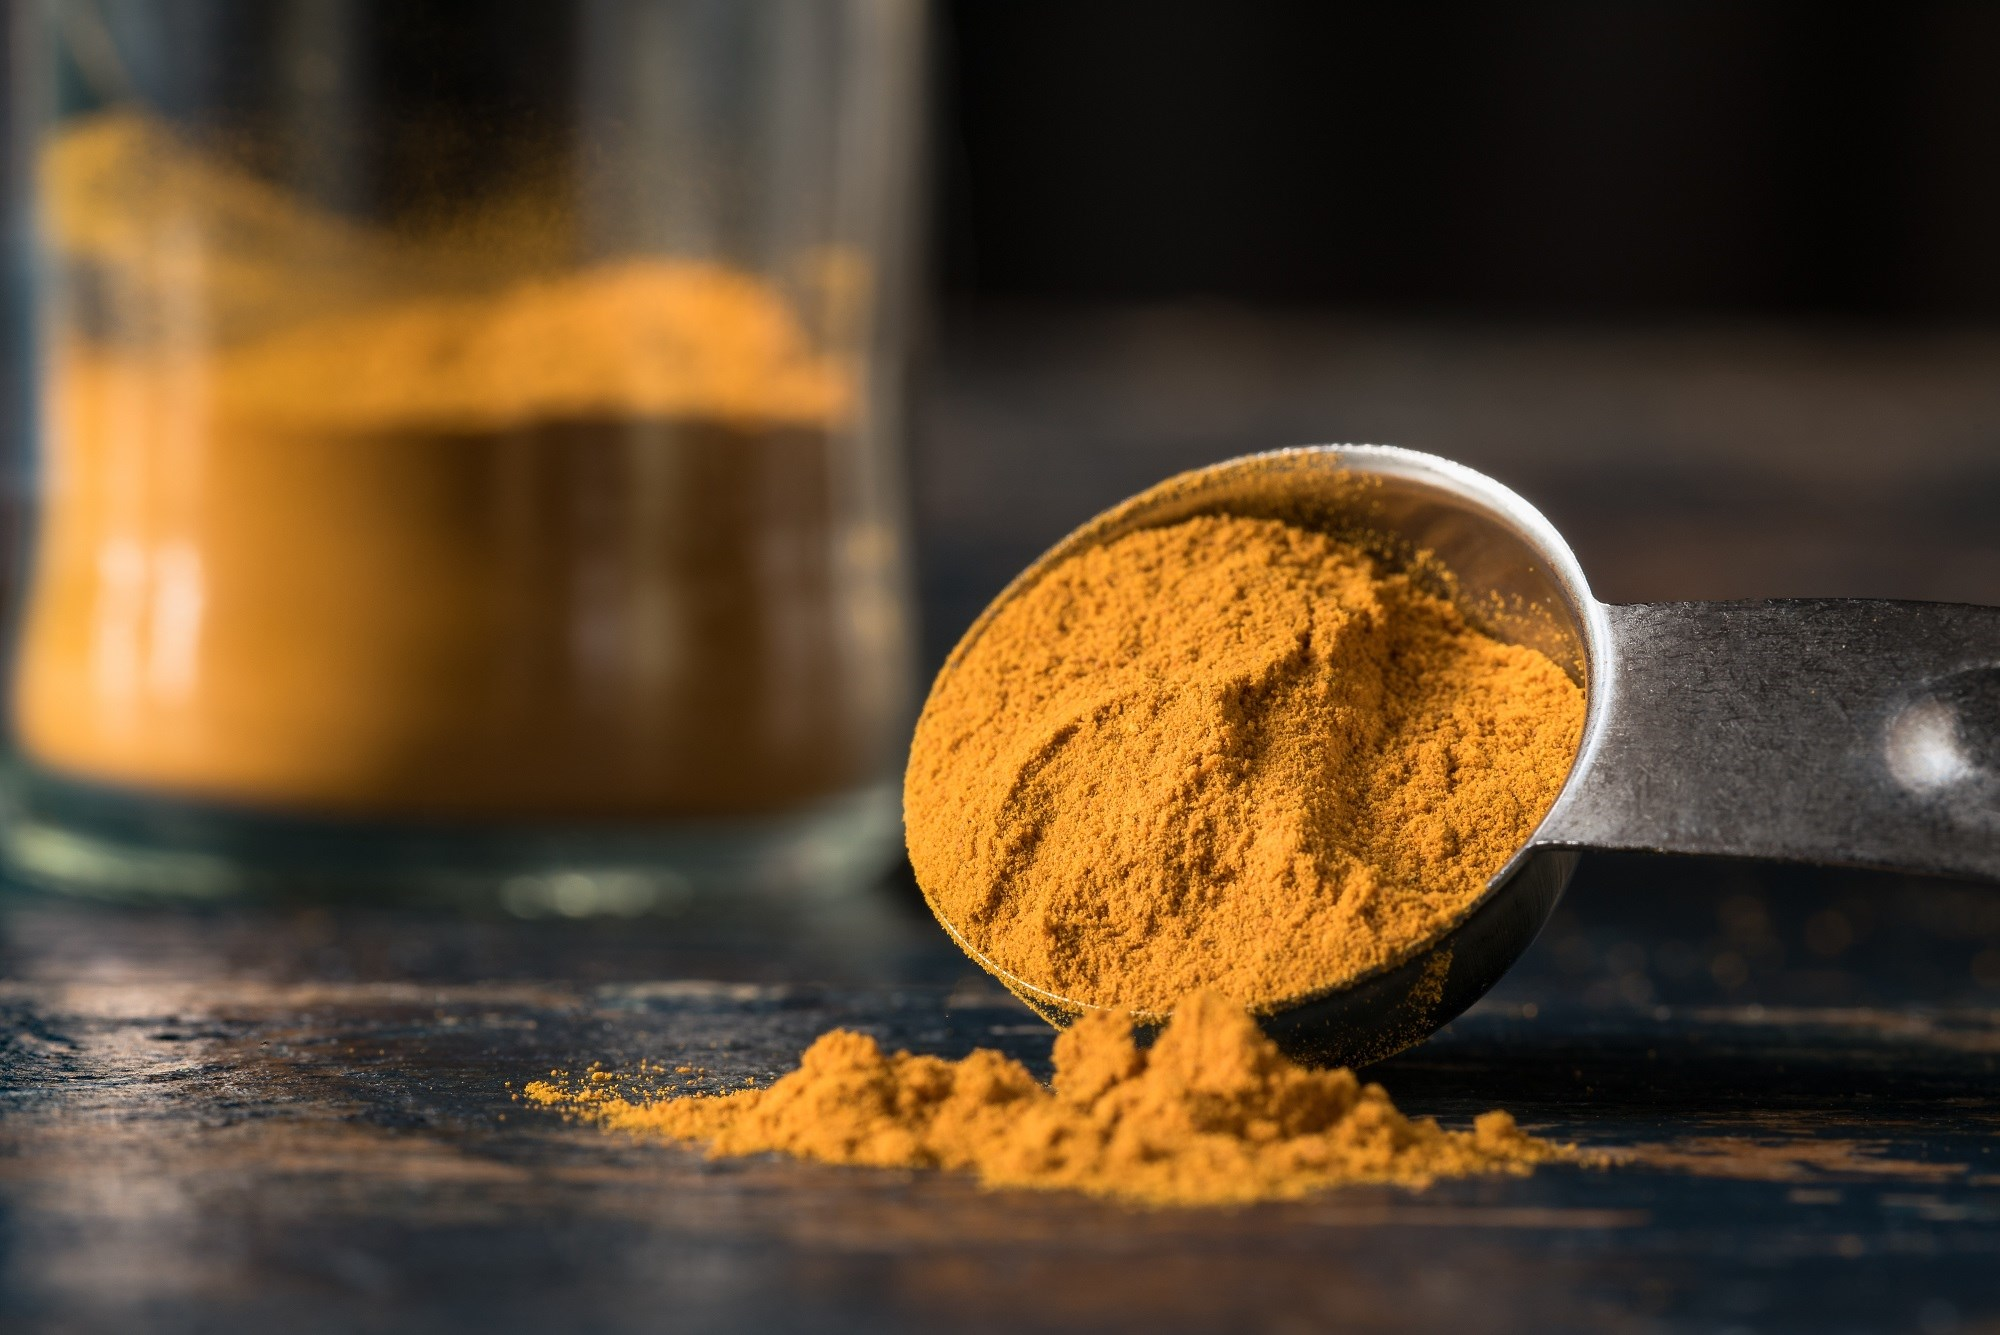 Spices such as turmeric and saffron may cause elevated blood lead levels in children.